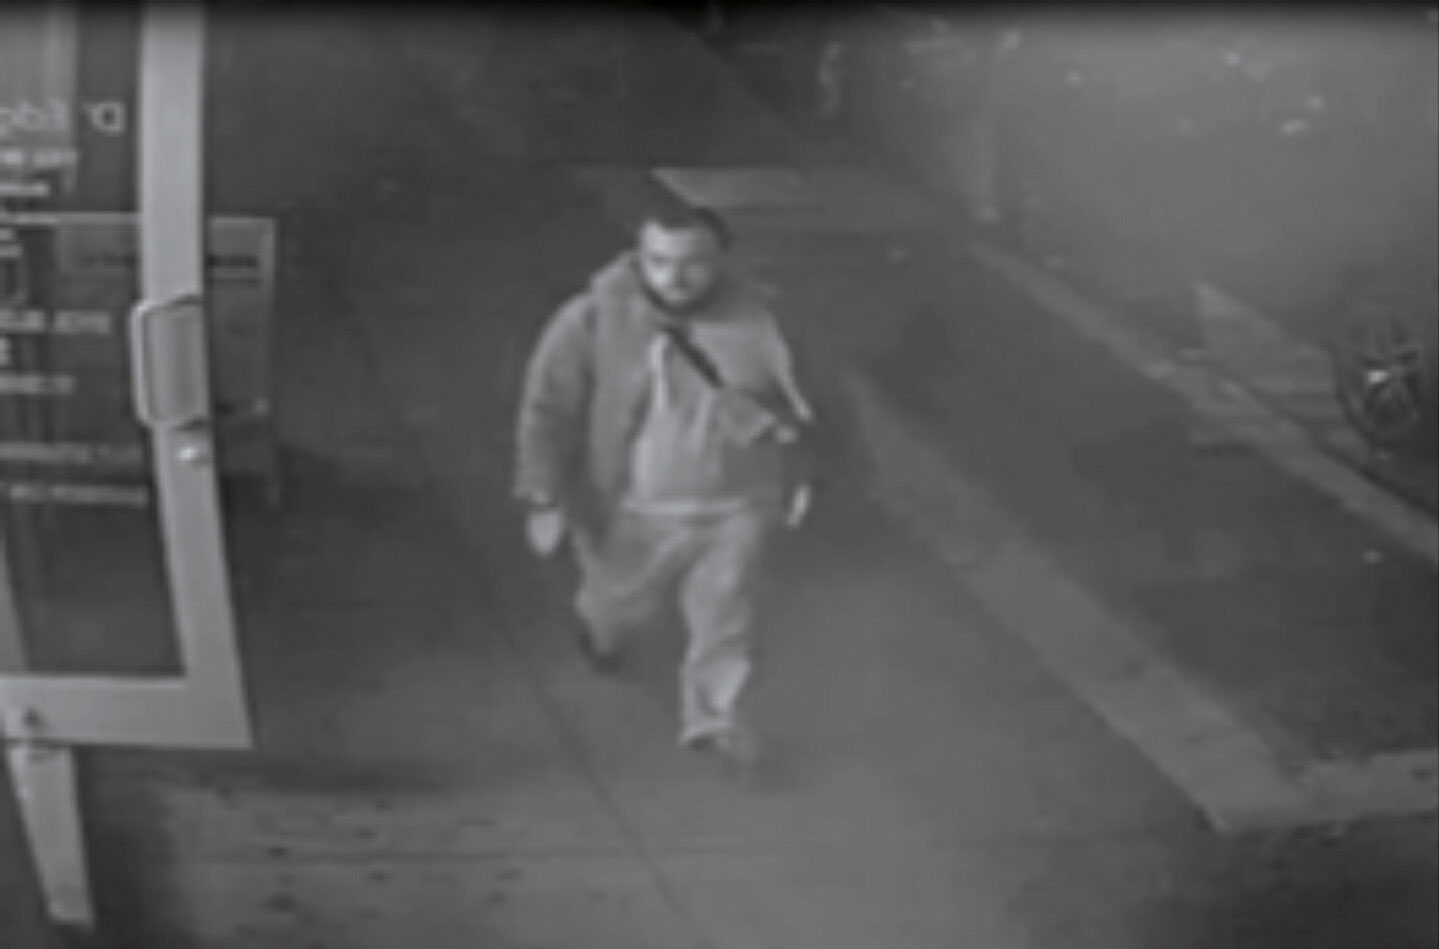 Surveillance footage shows New York City bombing suspect Ahmad Khan Rahami, 28, at the scene of the the explosion